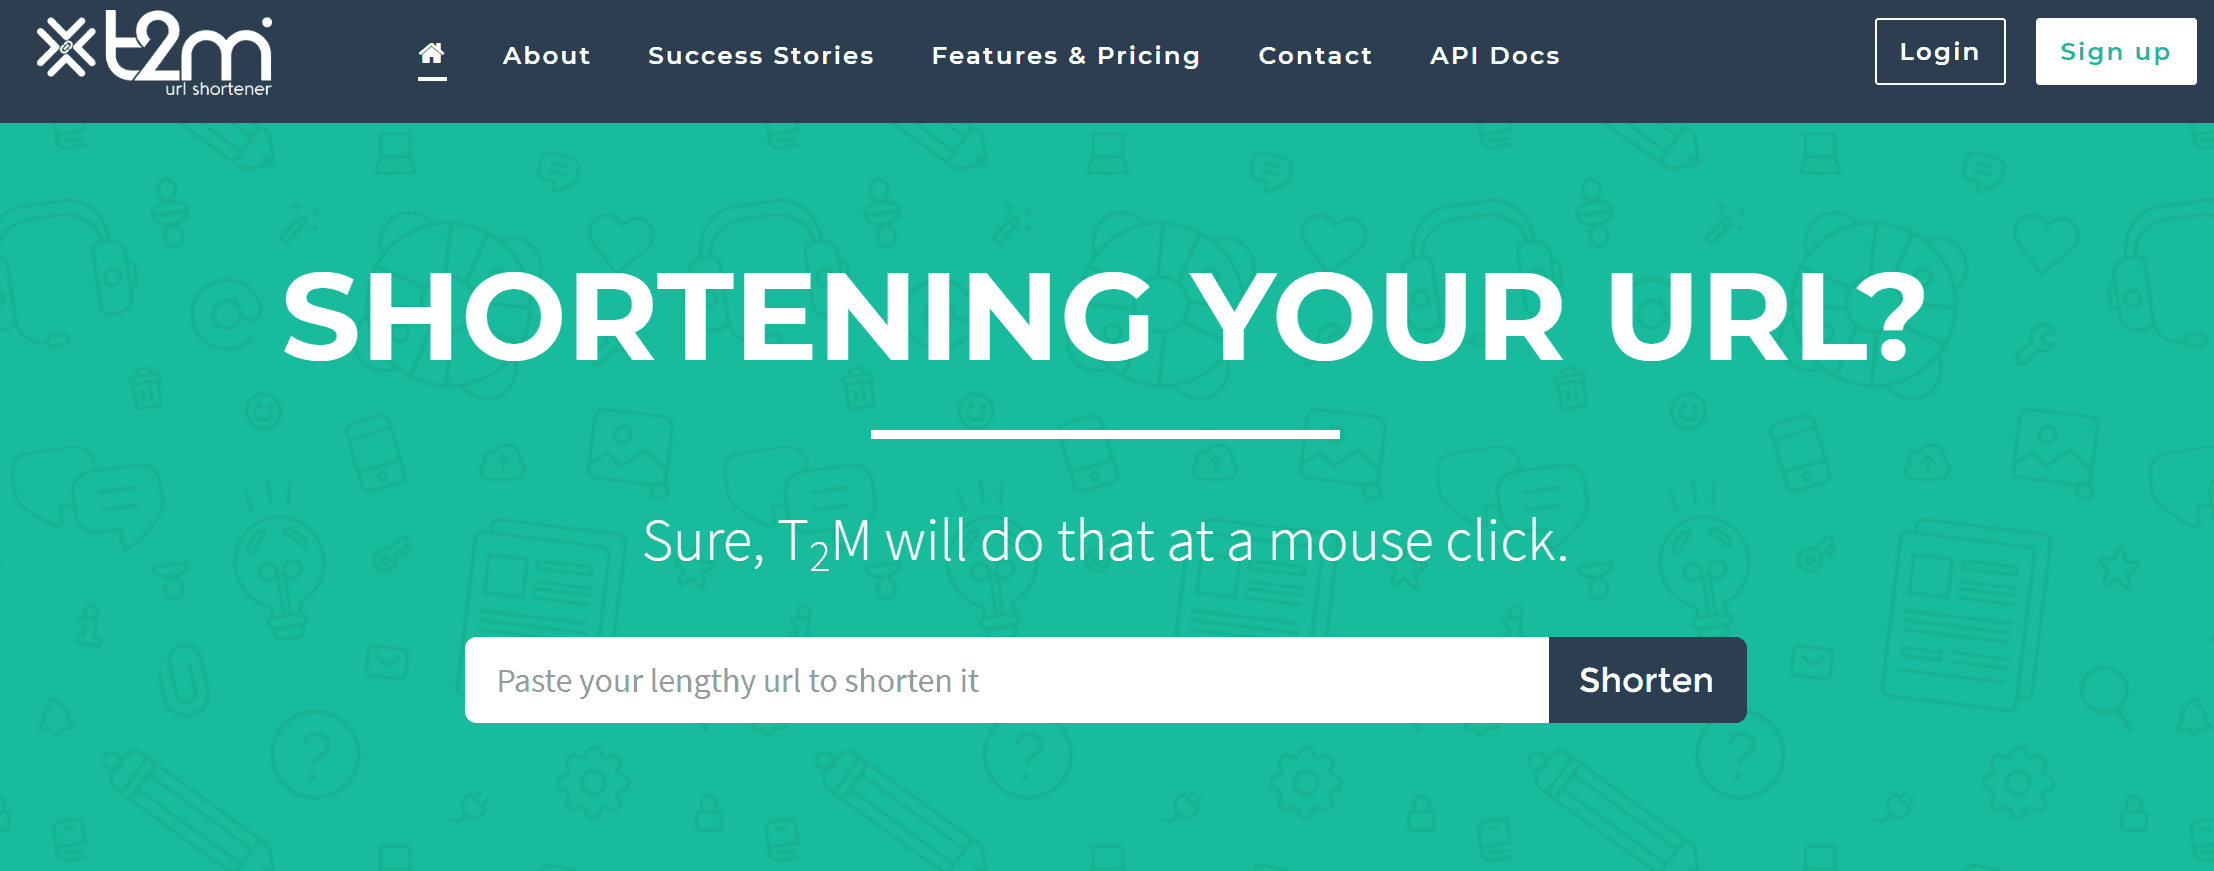 T2M URL Shortener Home Page